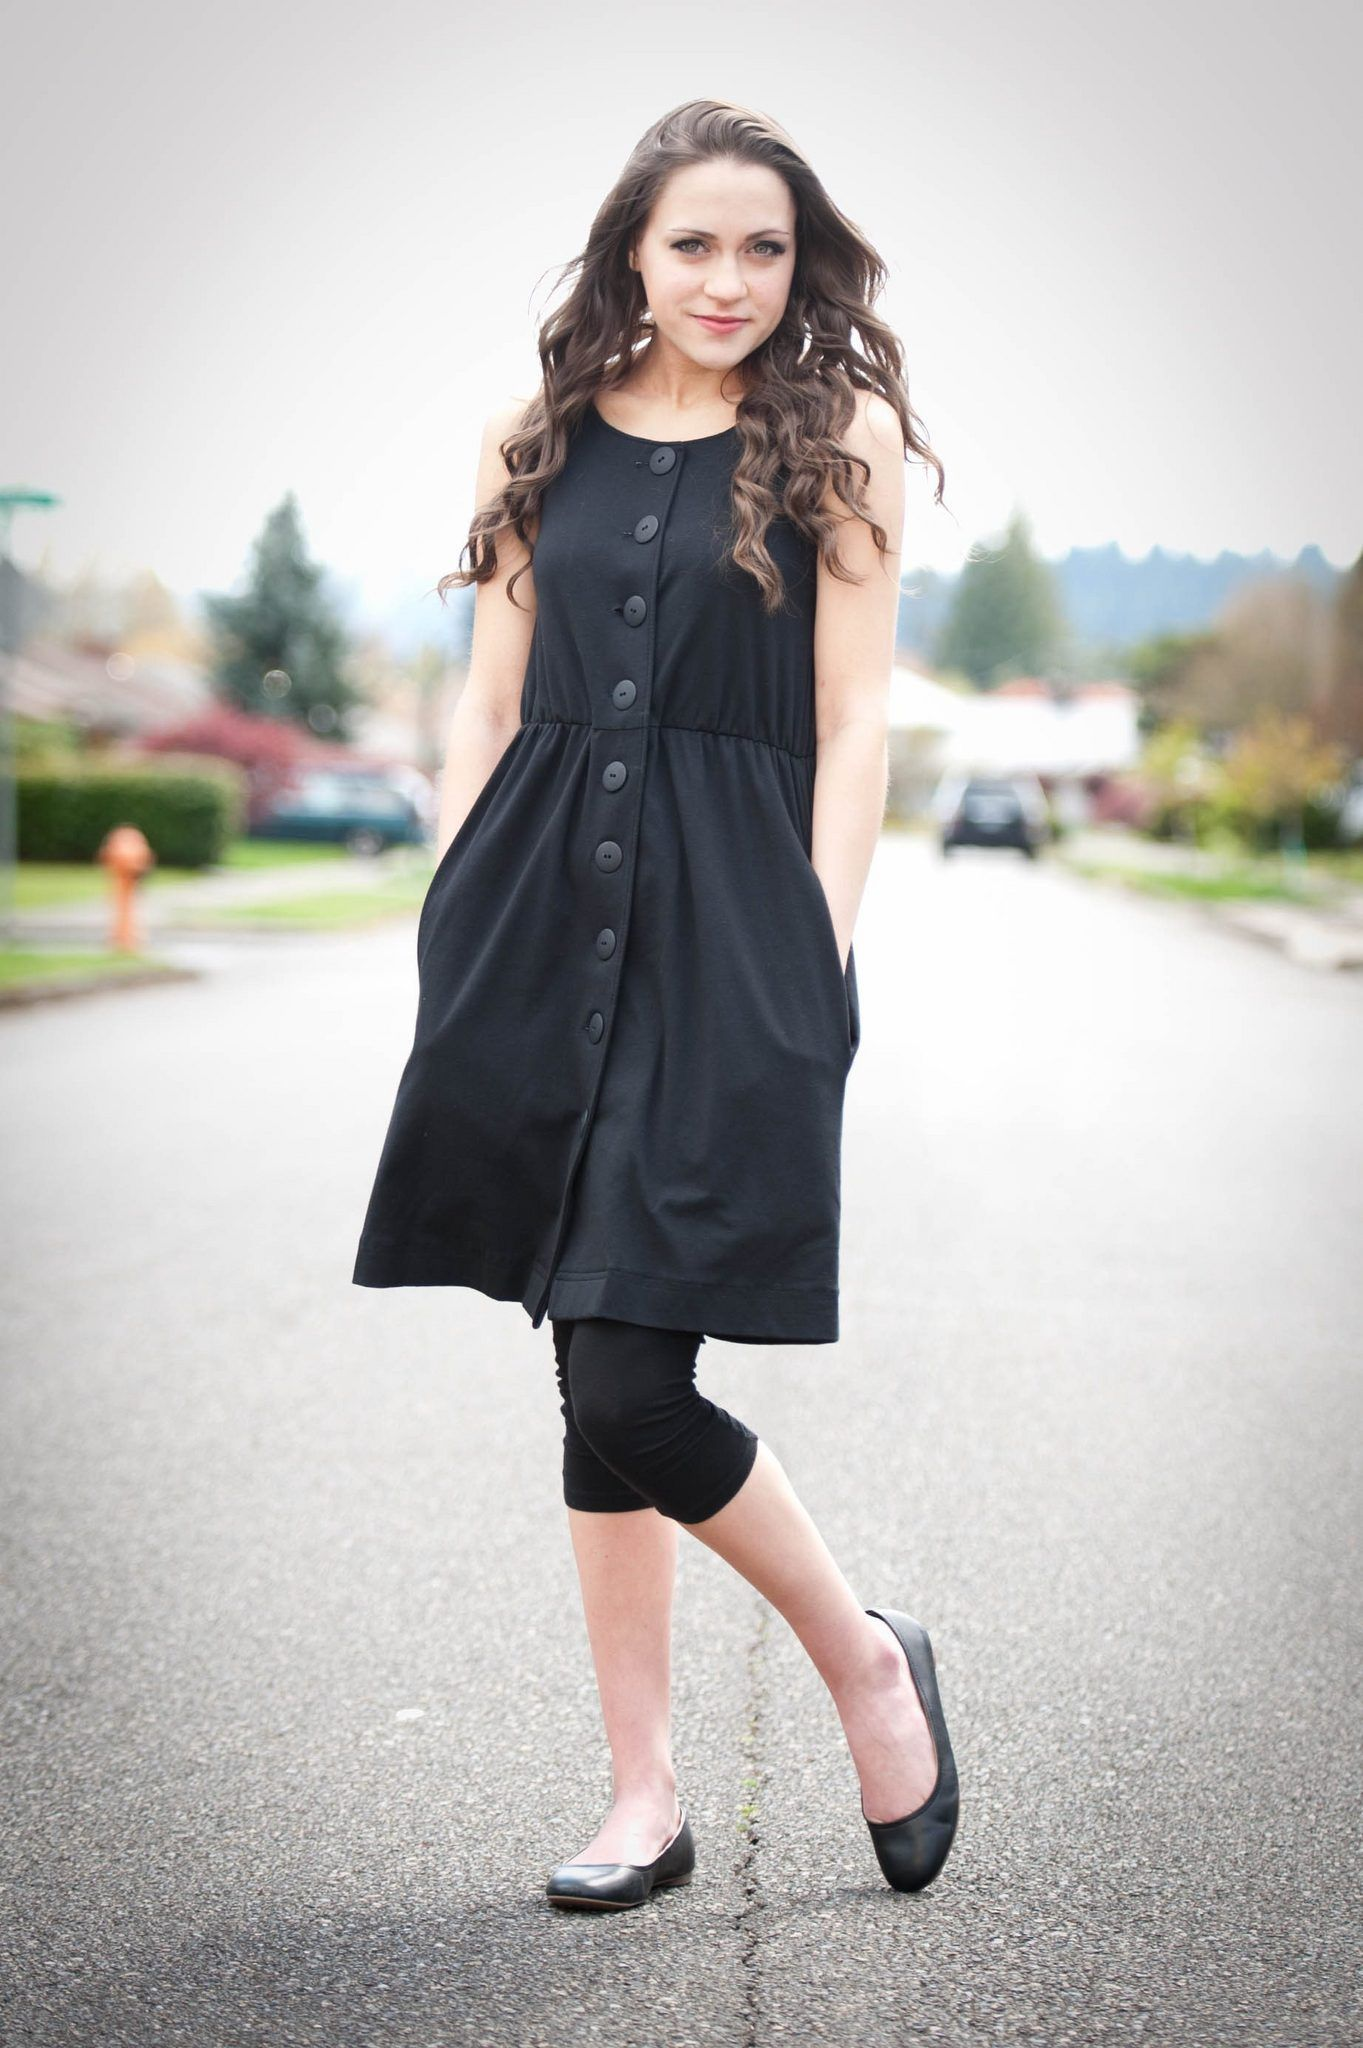 Clackamas Raised Elaini Garfield Is Wearing 1 Dress 100 Ways For Orphans Halfway Around The World Dresses With Leggings Lovely Clothes Simple Black Dress [ 2048 x 1363 Pixel ]